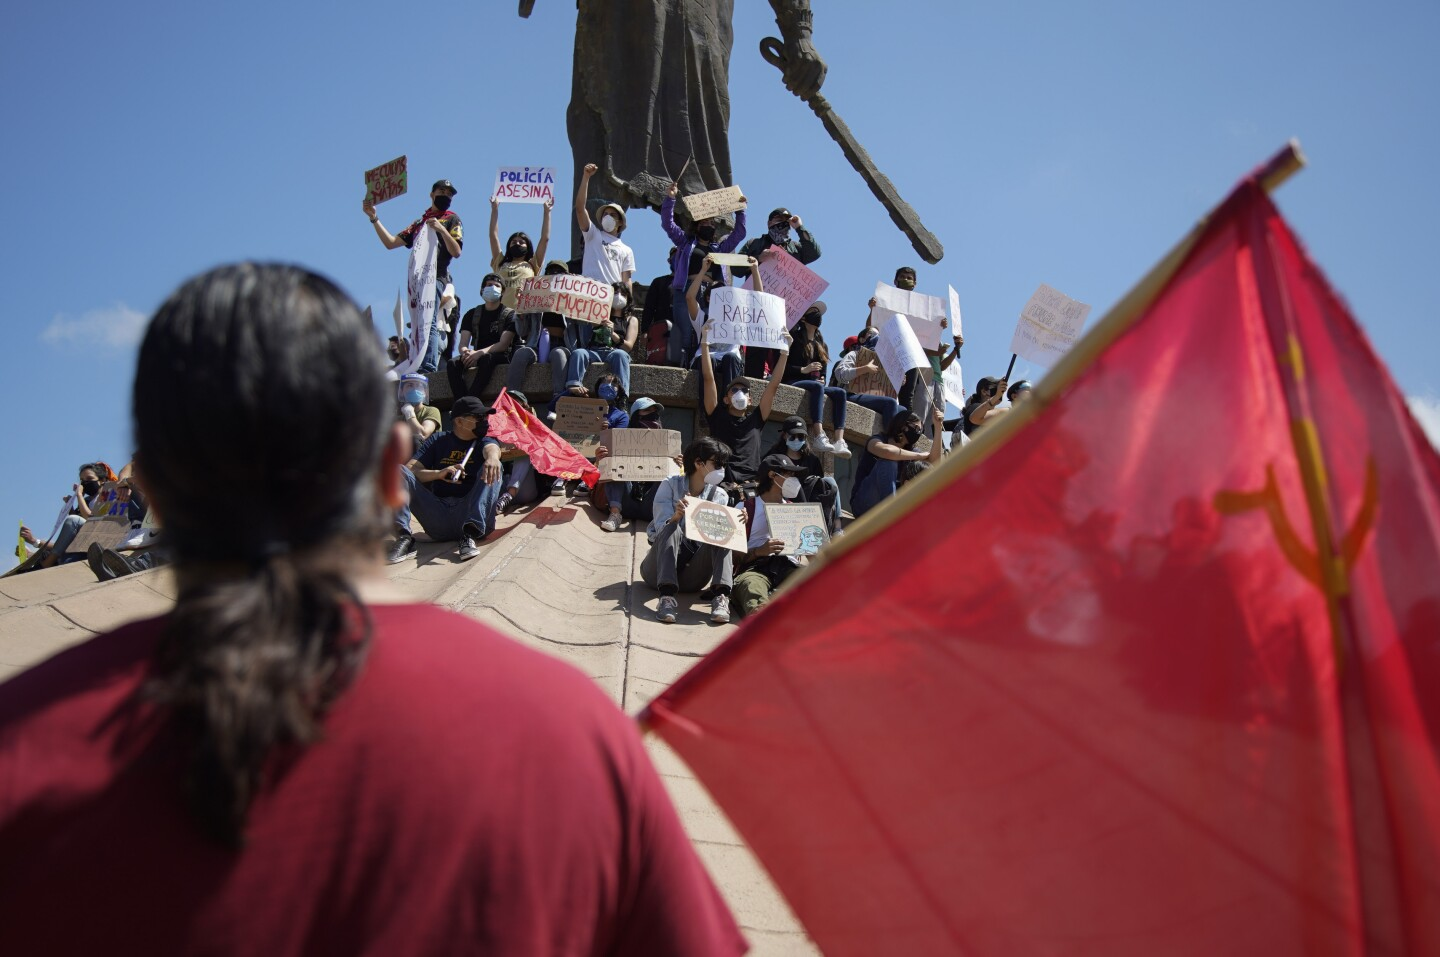 Protesters gather around the statue while others cheer from below. They gather at the Cuauhtemoc roundabout in Zona Rio, Tijuana June 7th,2020. The protesters gather to raise awareness to police brutality in Mexico and the United States.